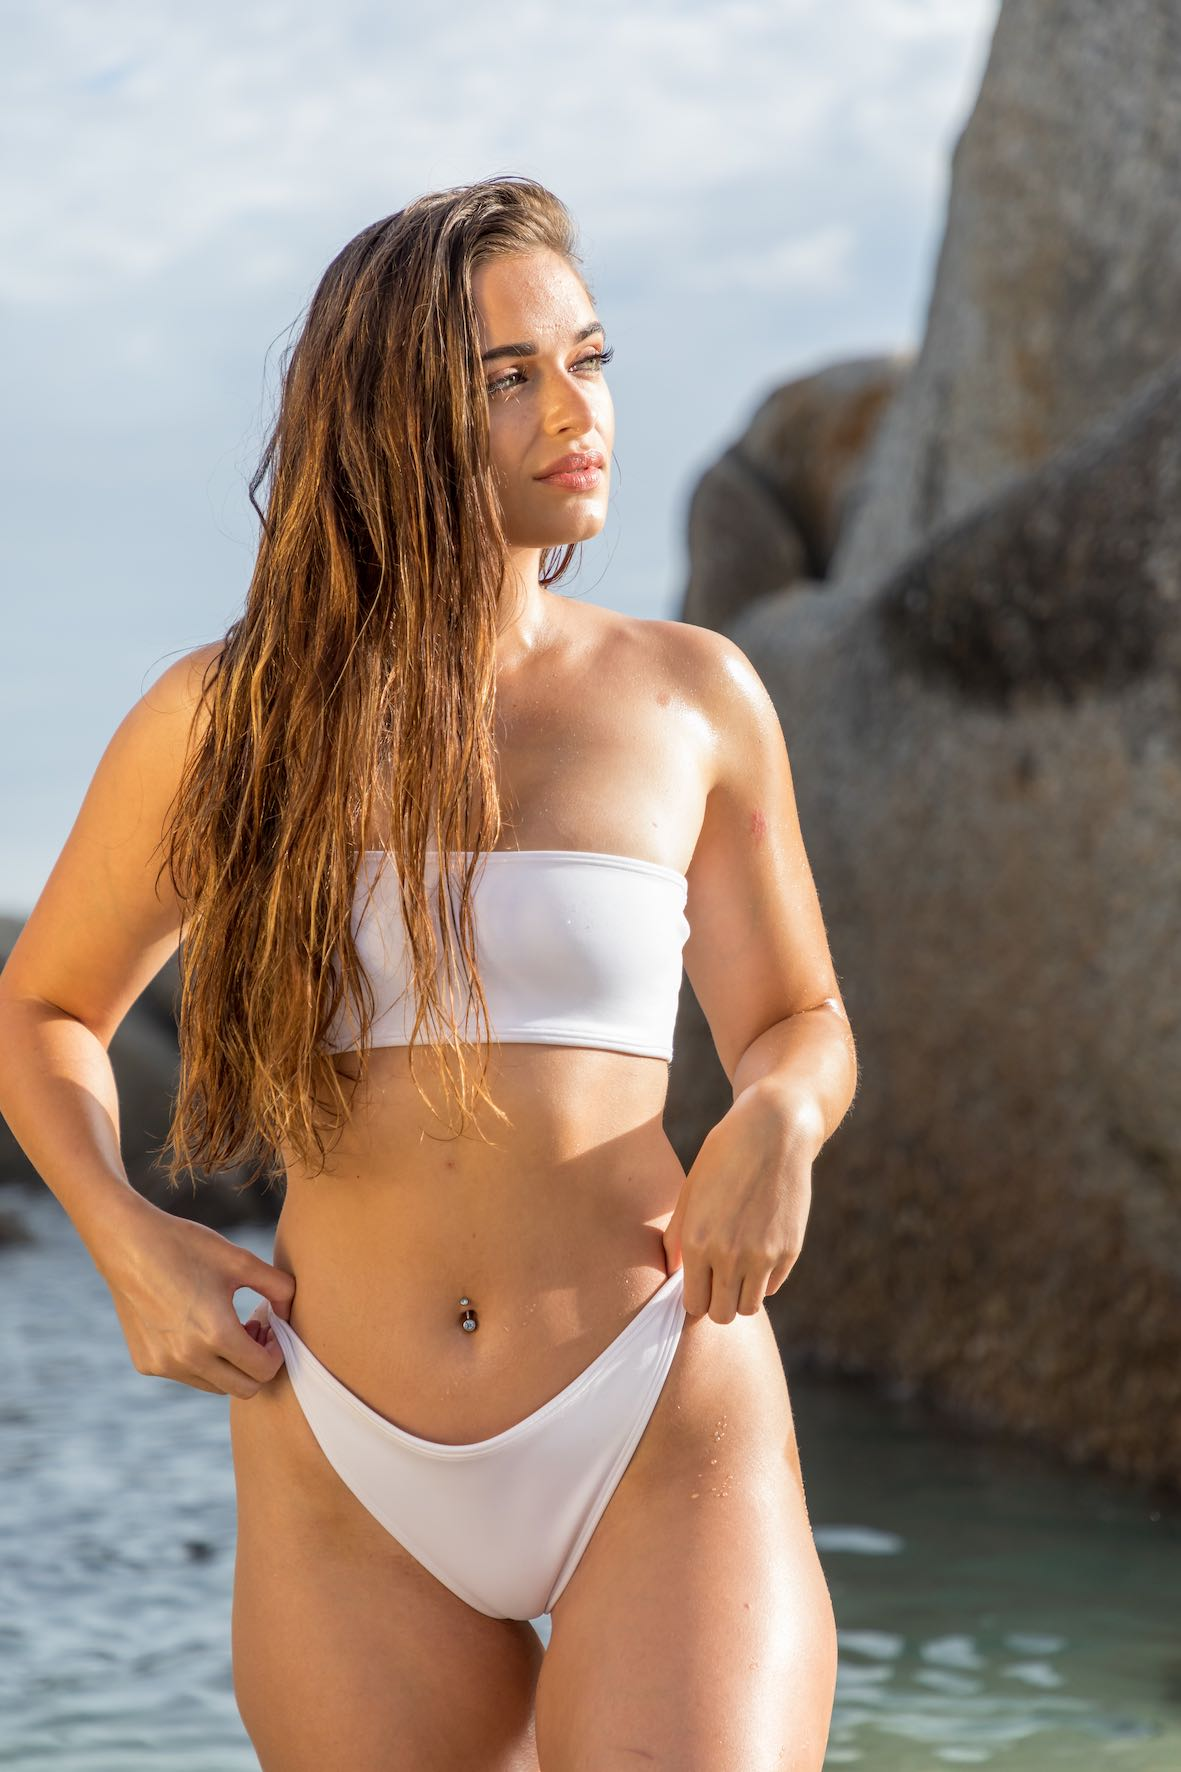 Mia le Roux featured in our latest SA Babes feature